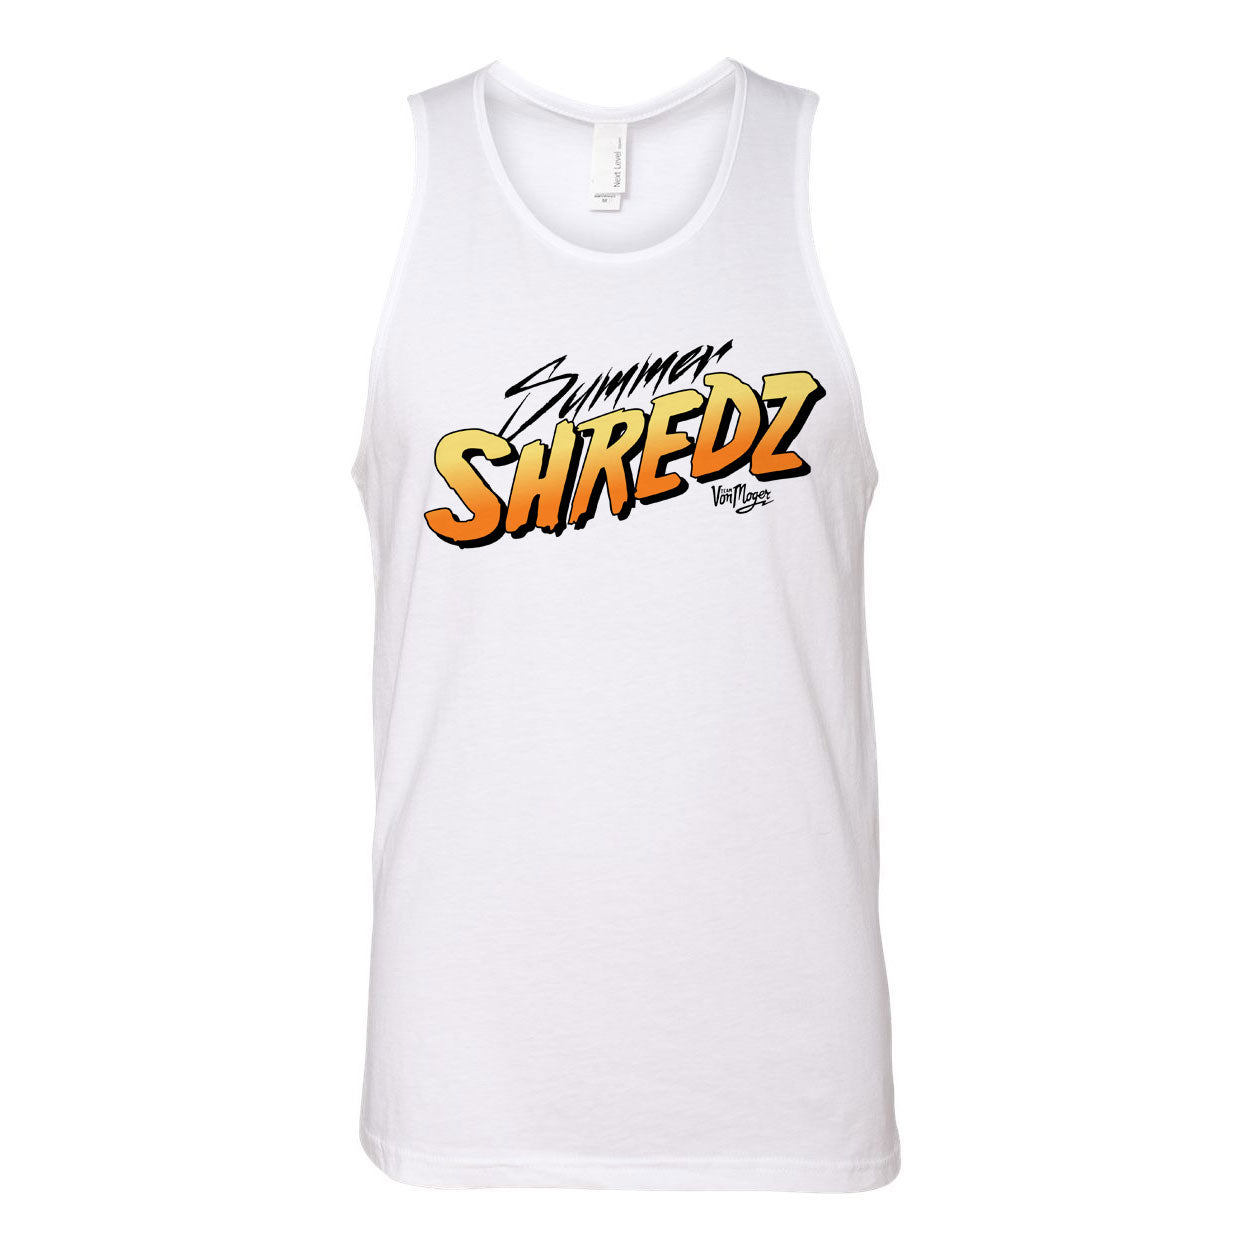 Summer Shredz Tank